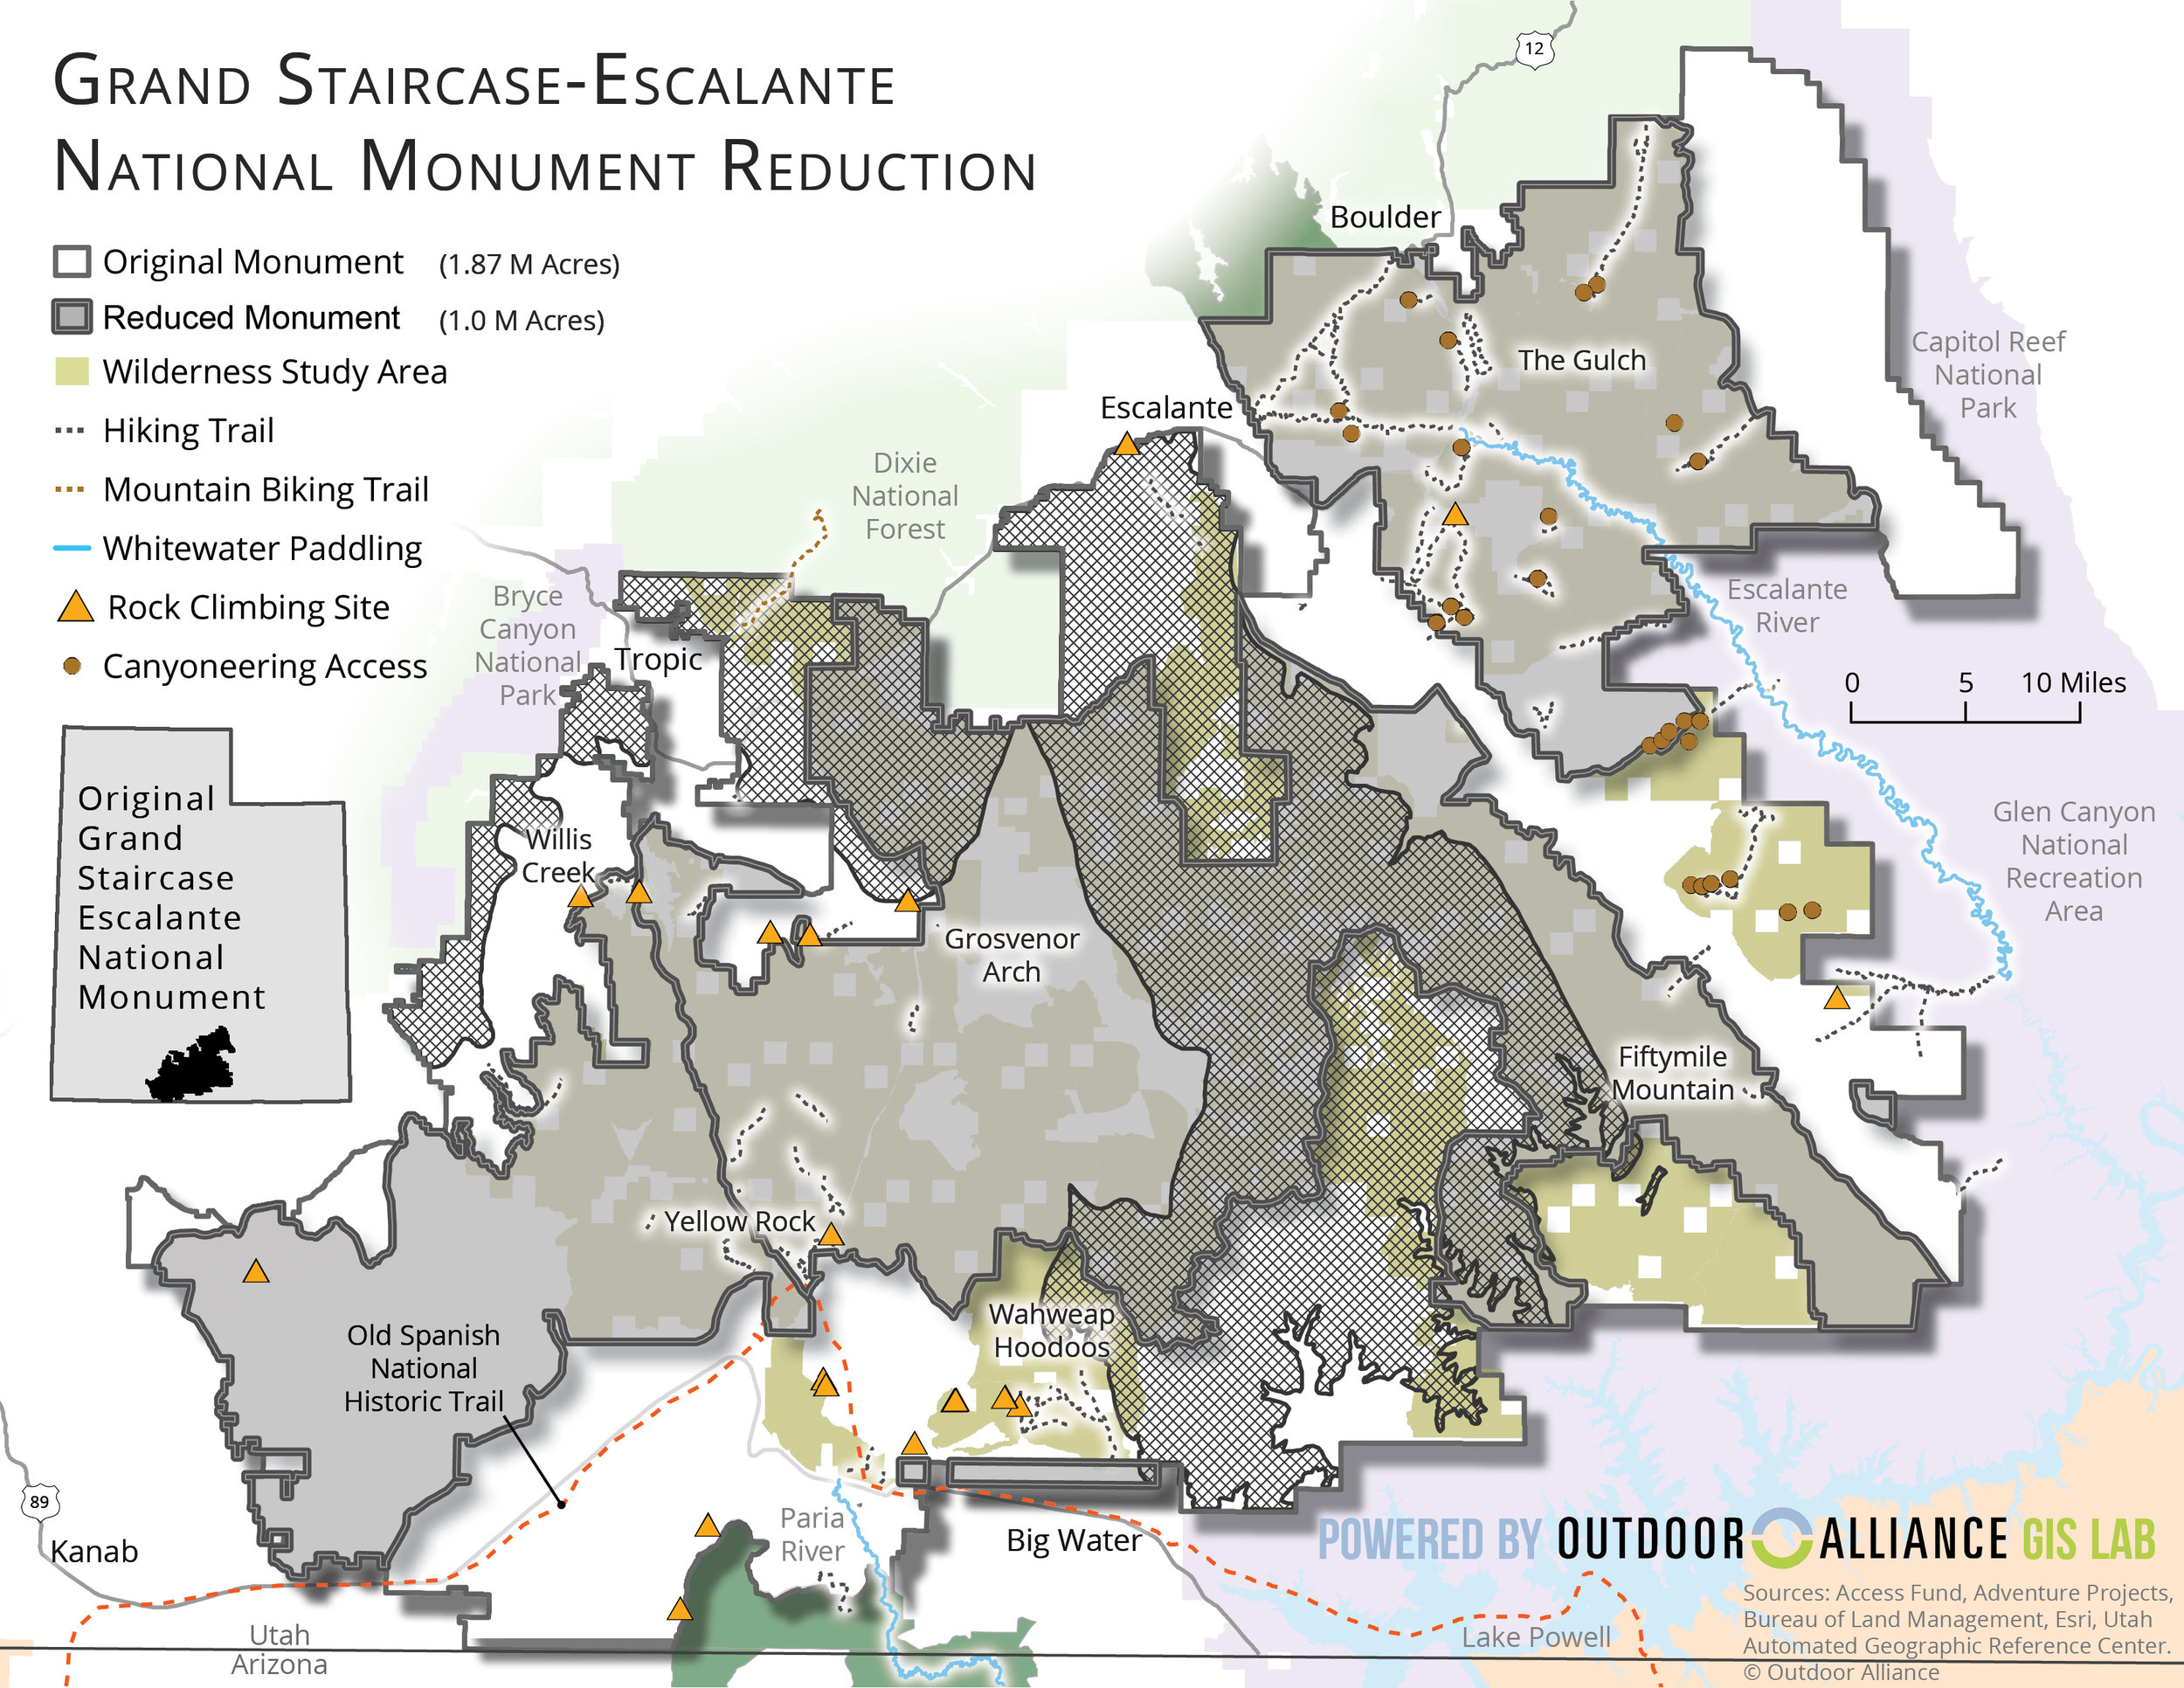 Via Outdoor Alliance GIS Lab, click to enlarge